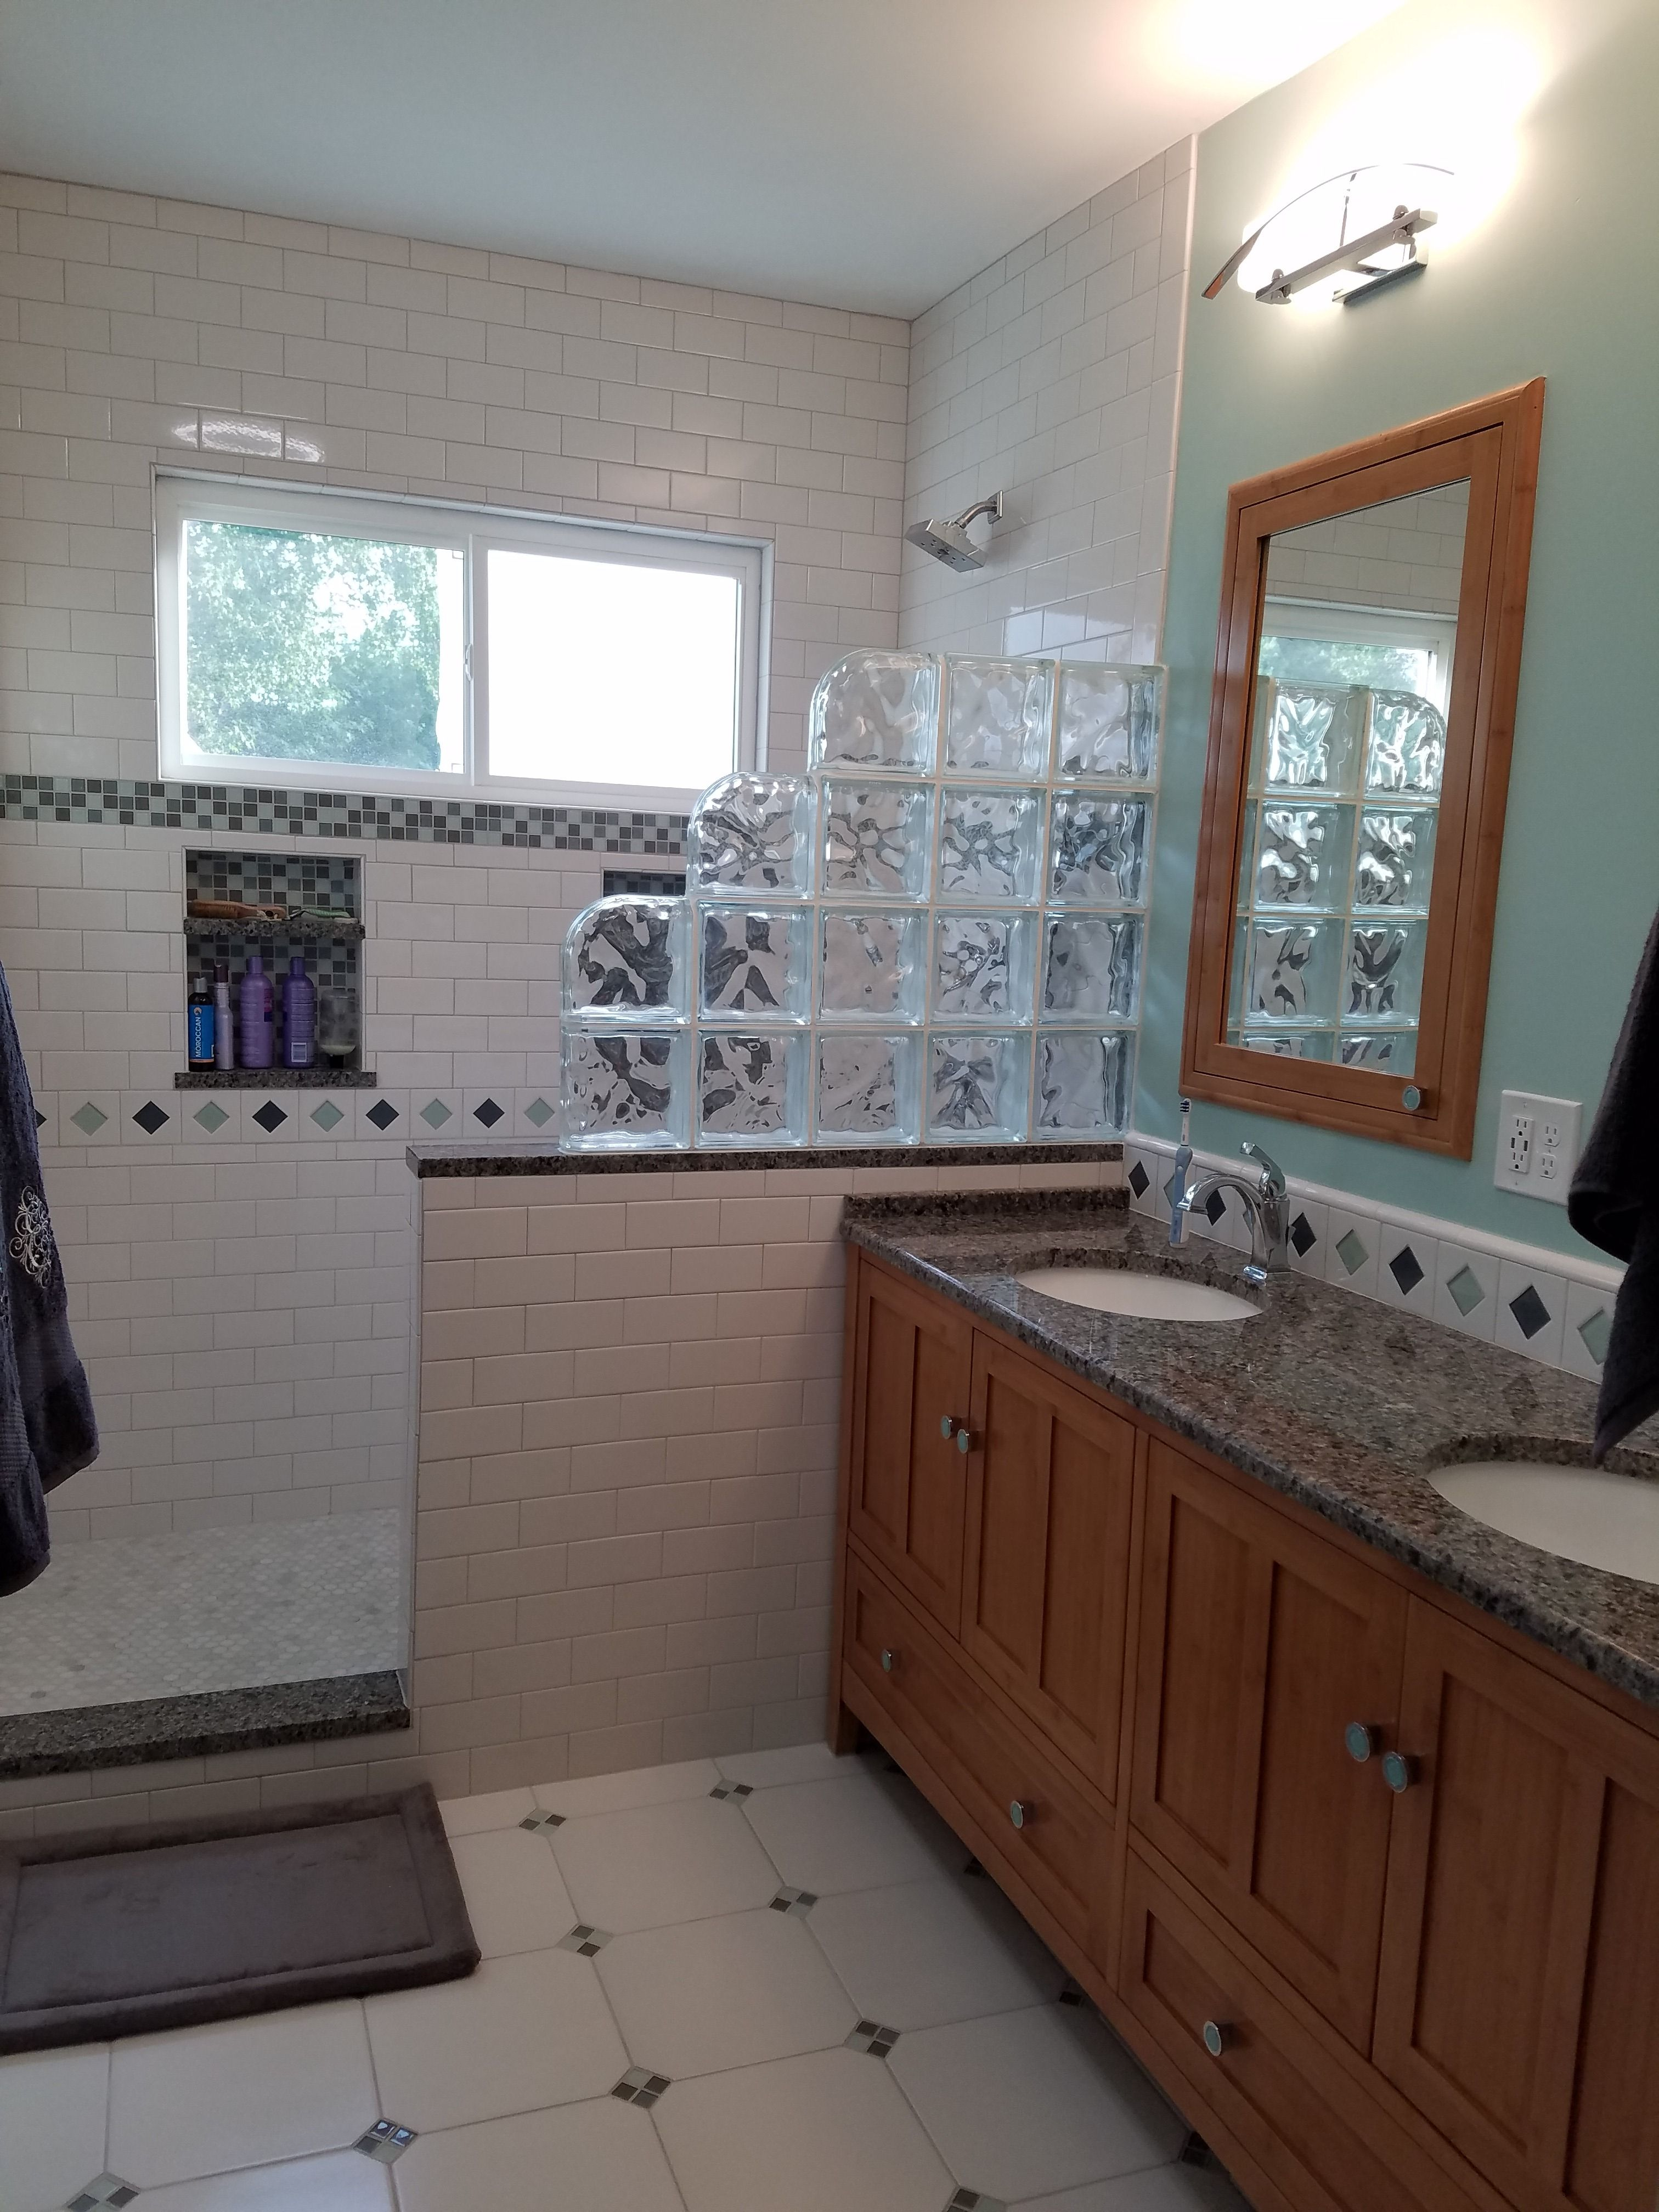 Our Finished Project Shower With Half Wall Glass Block Window And Art Deco Tiles Half Wall Shower Shower Remodel Glass Block Shower Wall Half tiled bathroom window